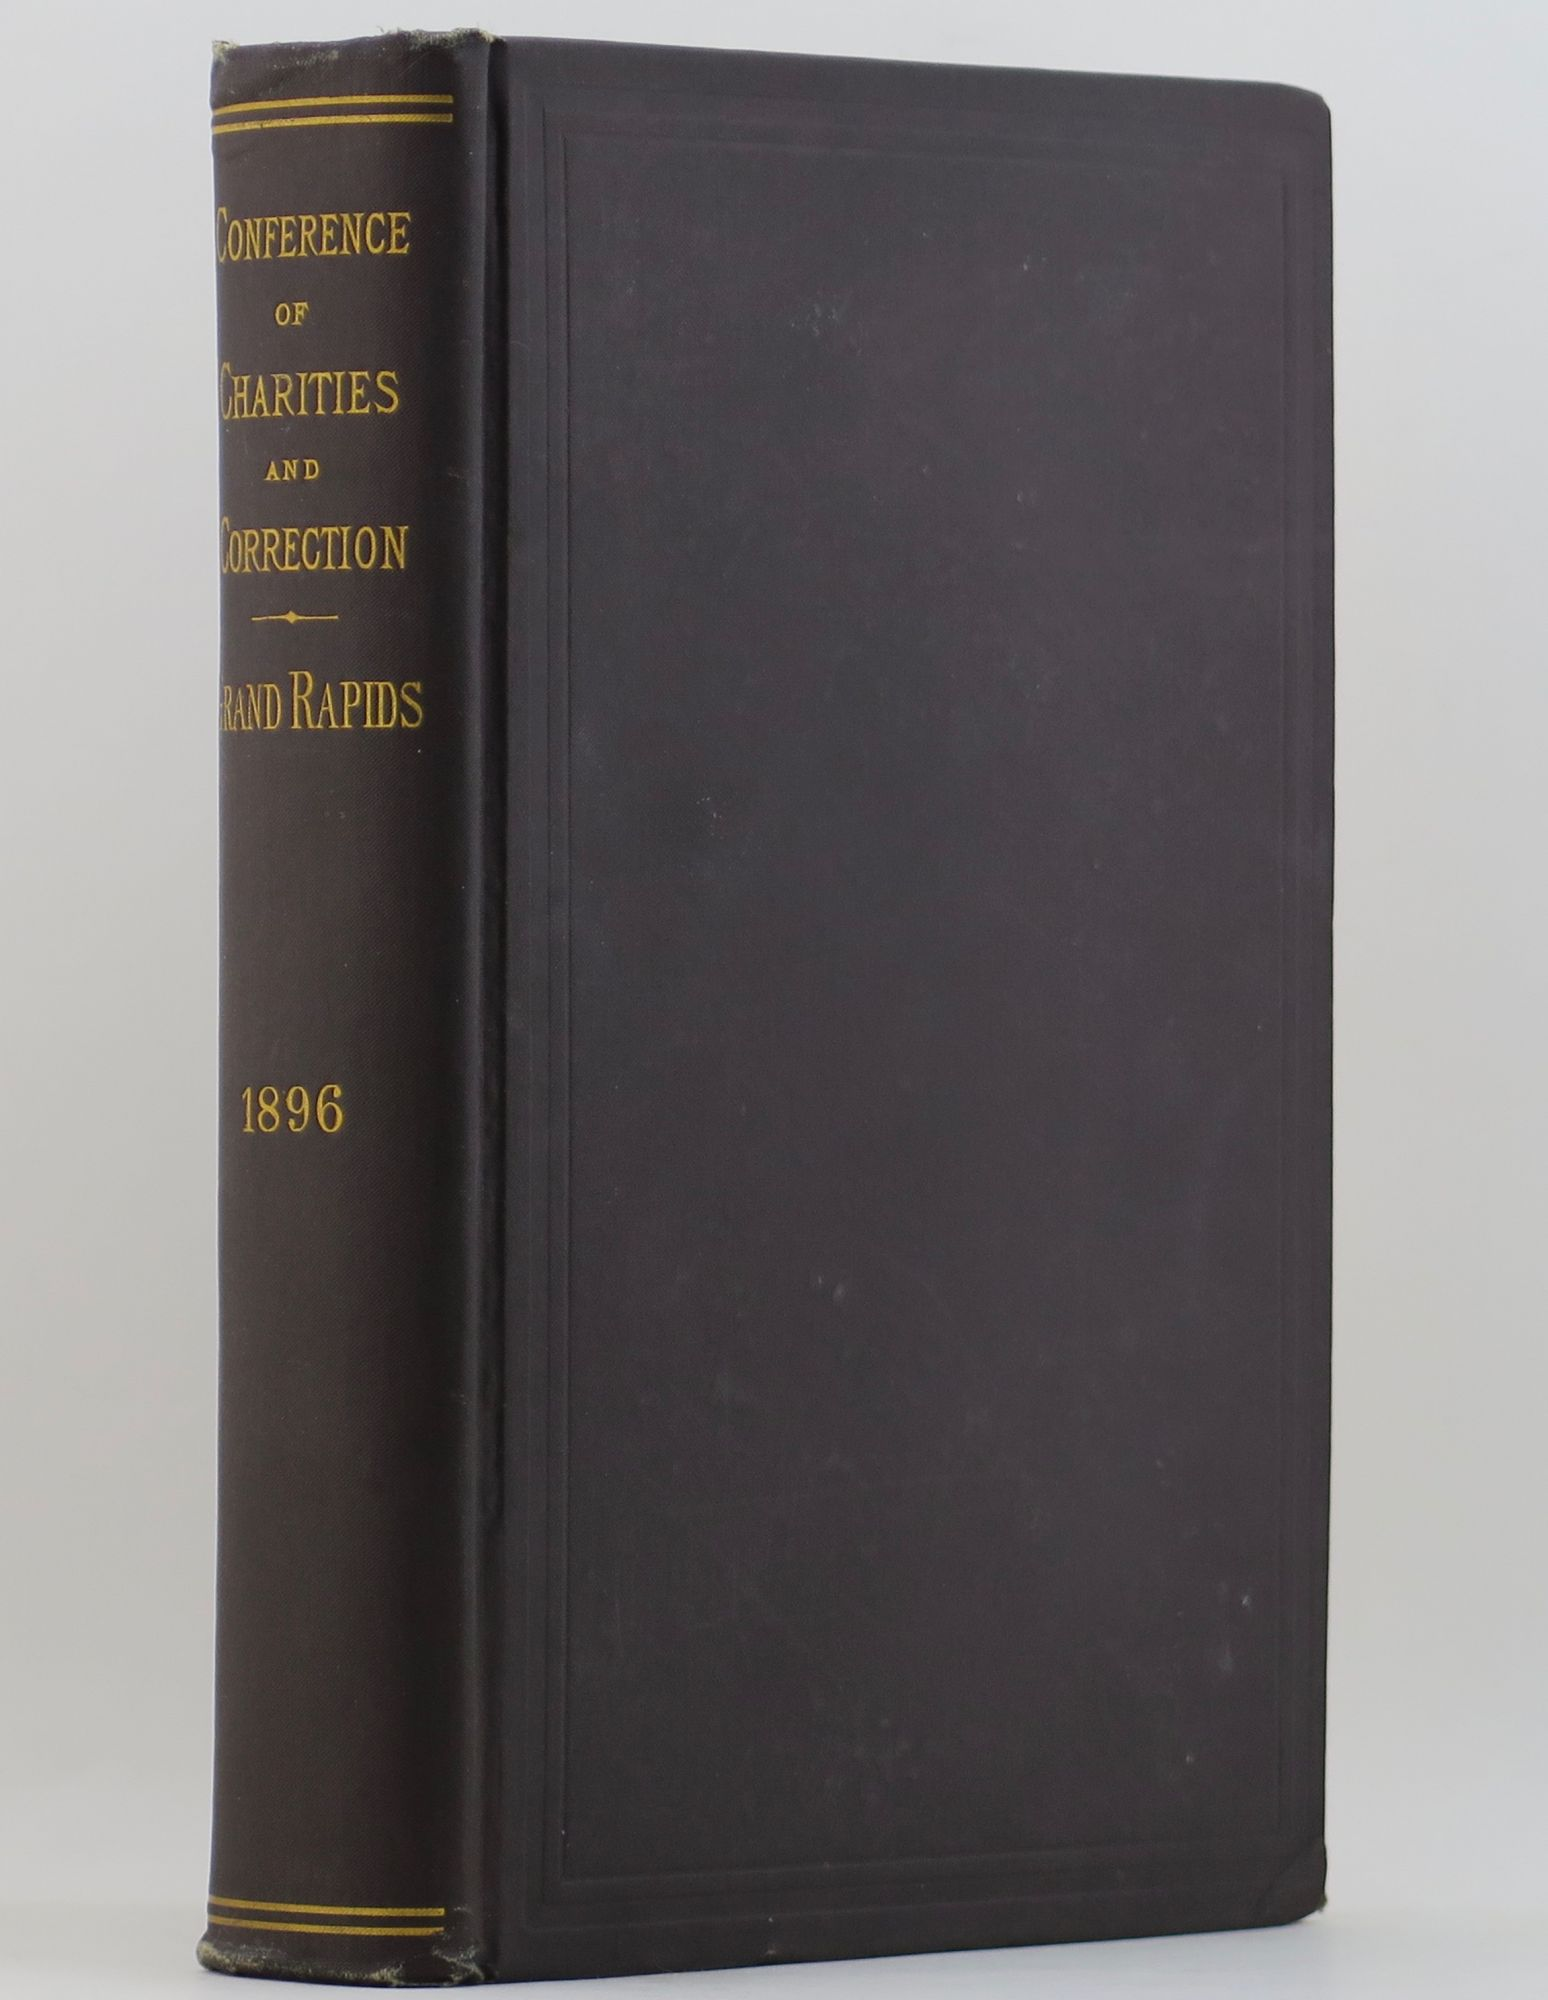 BARROWS, ISABEL CHAPIN (EDITOR) - Proceedings of the National Conference of Charities and Correction at the Twenty-Third Annual Session Held in Grand Rapids, Mich. , June 4-10, 1896